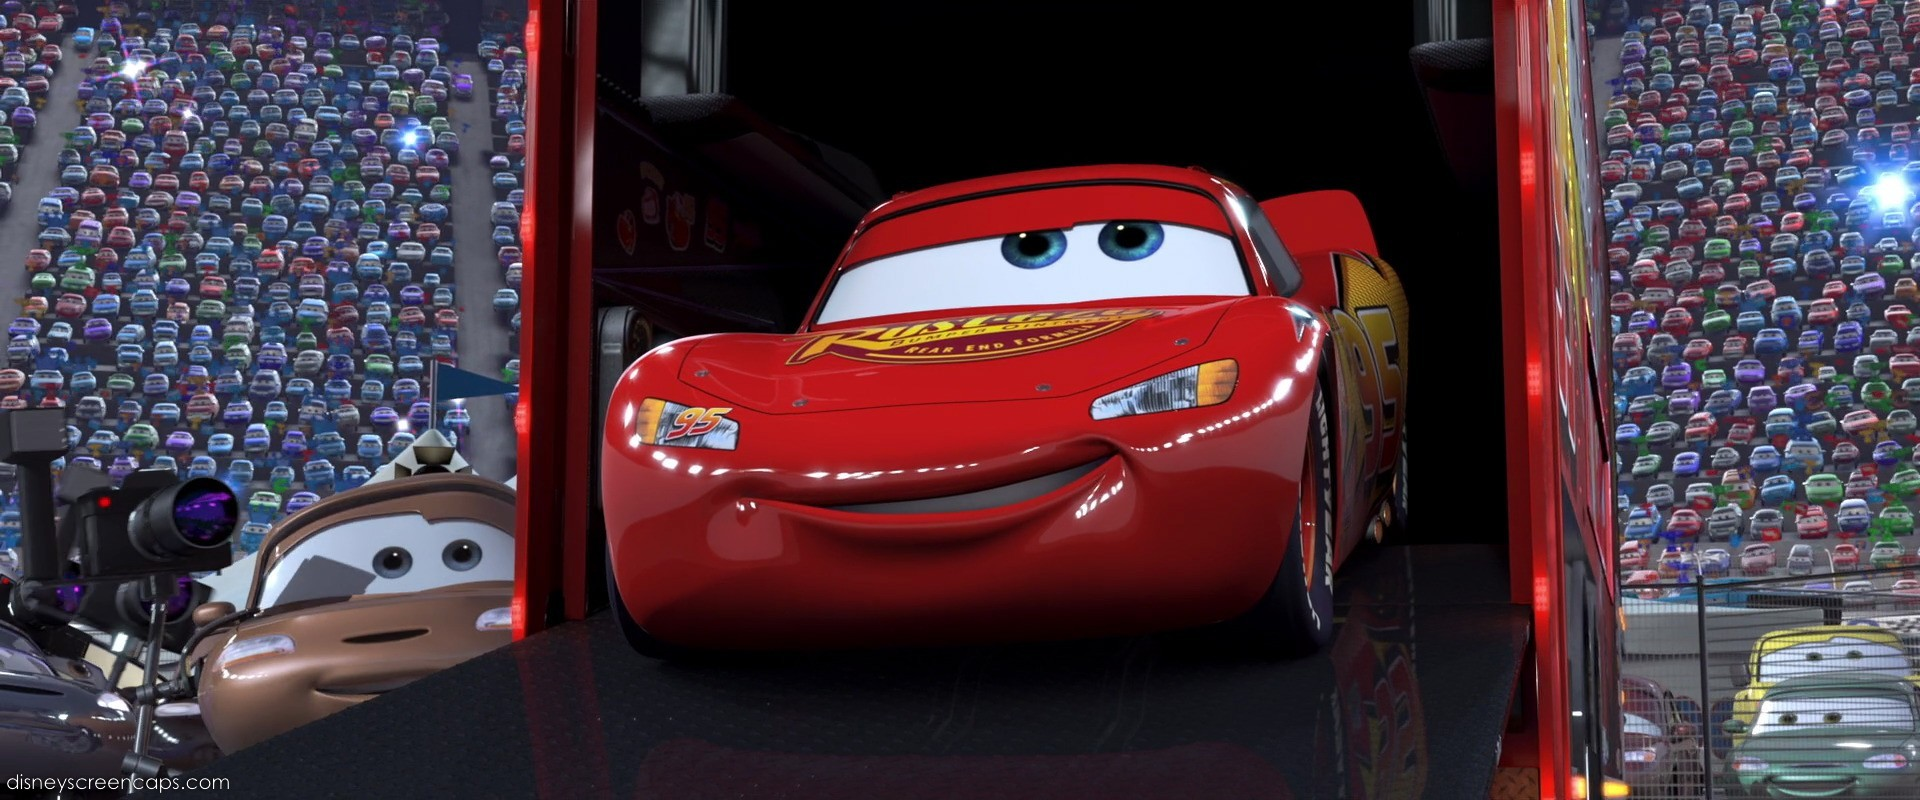 lightning mcqueen images lightning mcqueen hd wallpaper and background photos - Cars The Movie Lightning Mcqueen